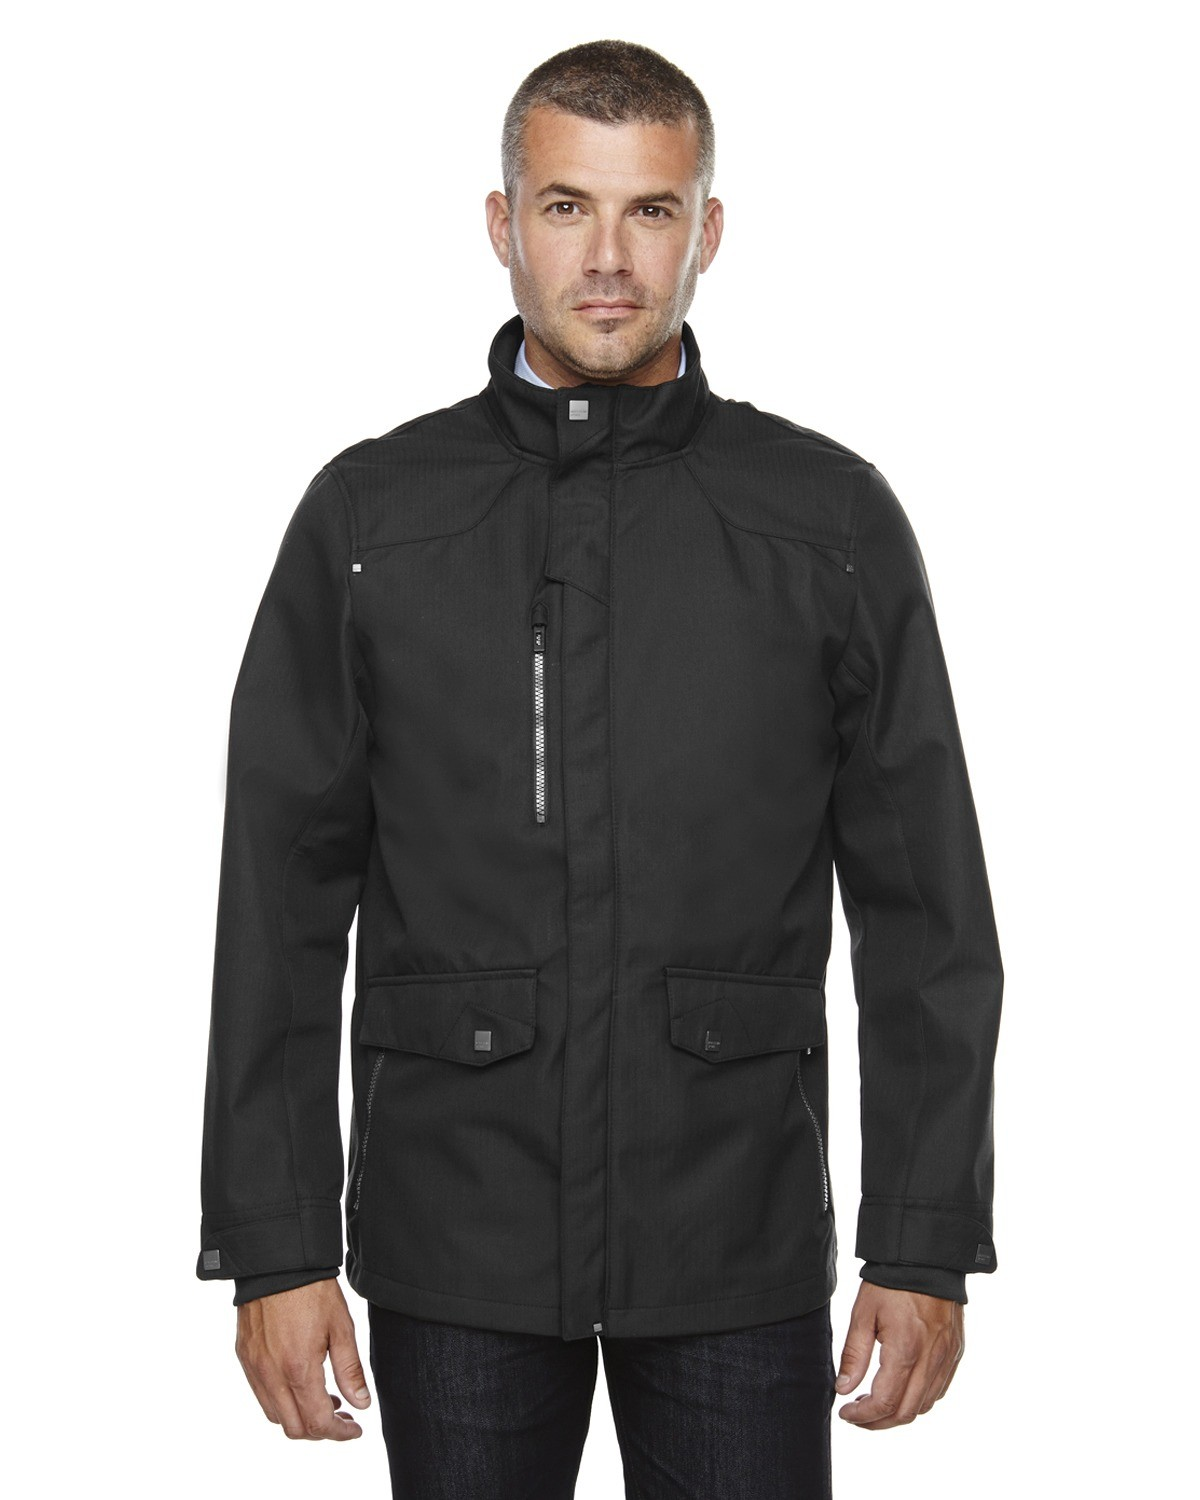 Men's Uptown Three-Layer Light Bonded City Textured Soft Shell Jacket